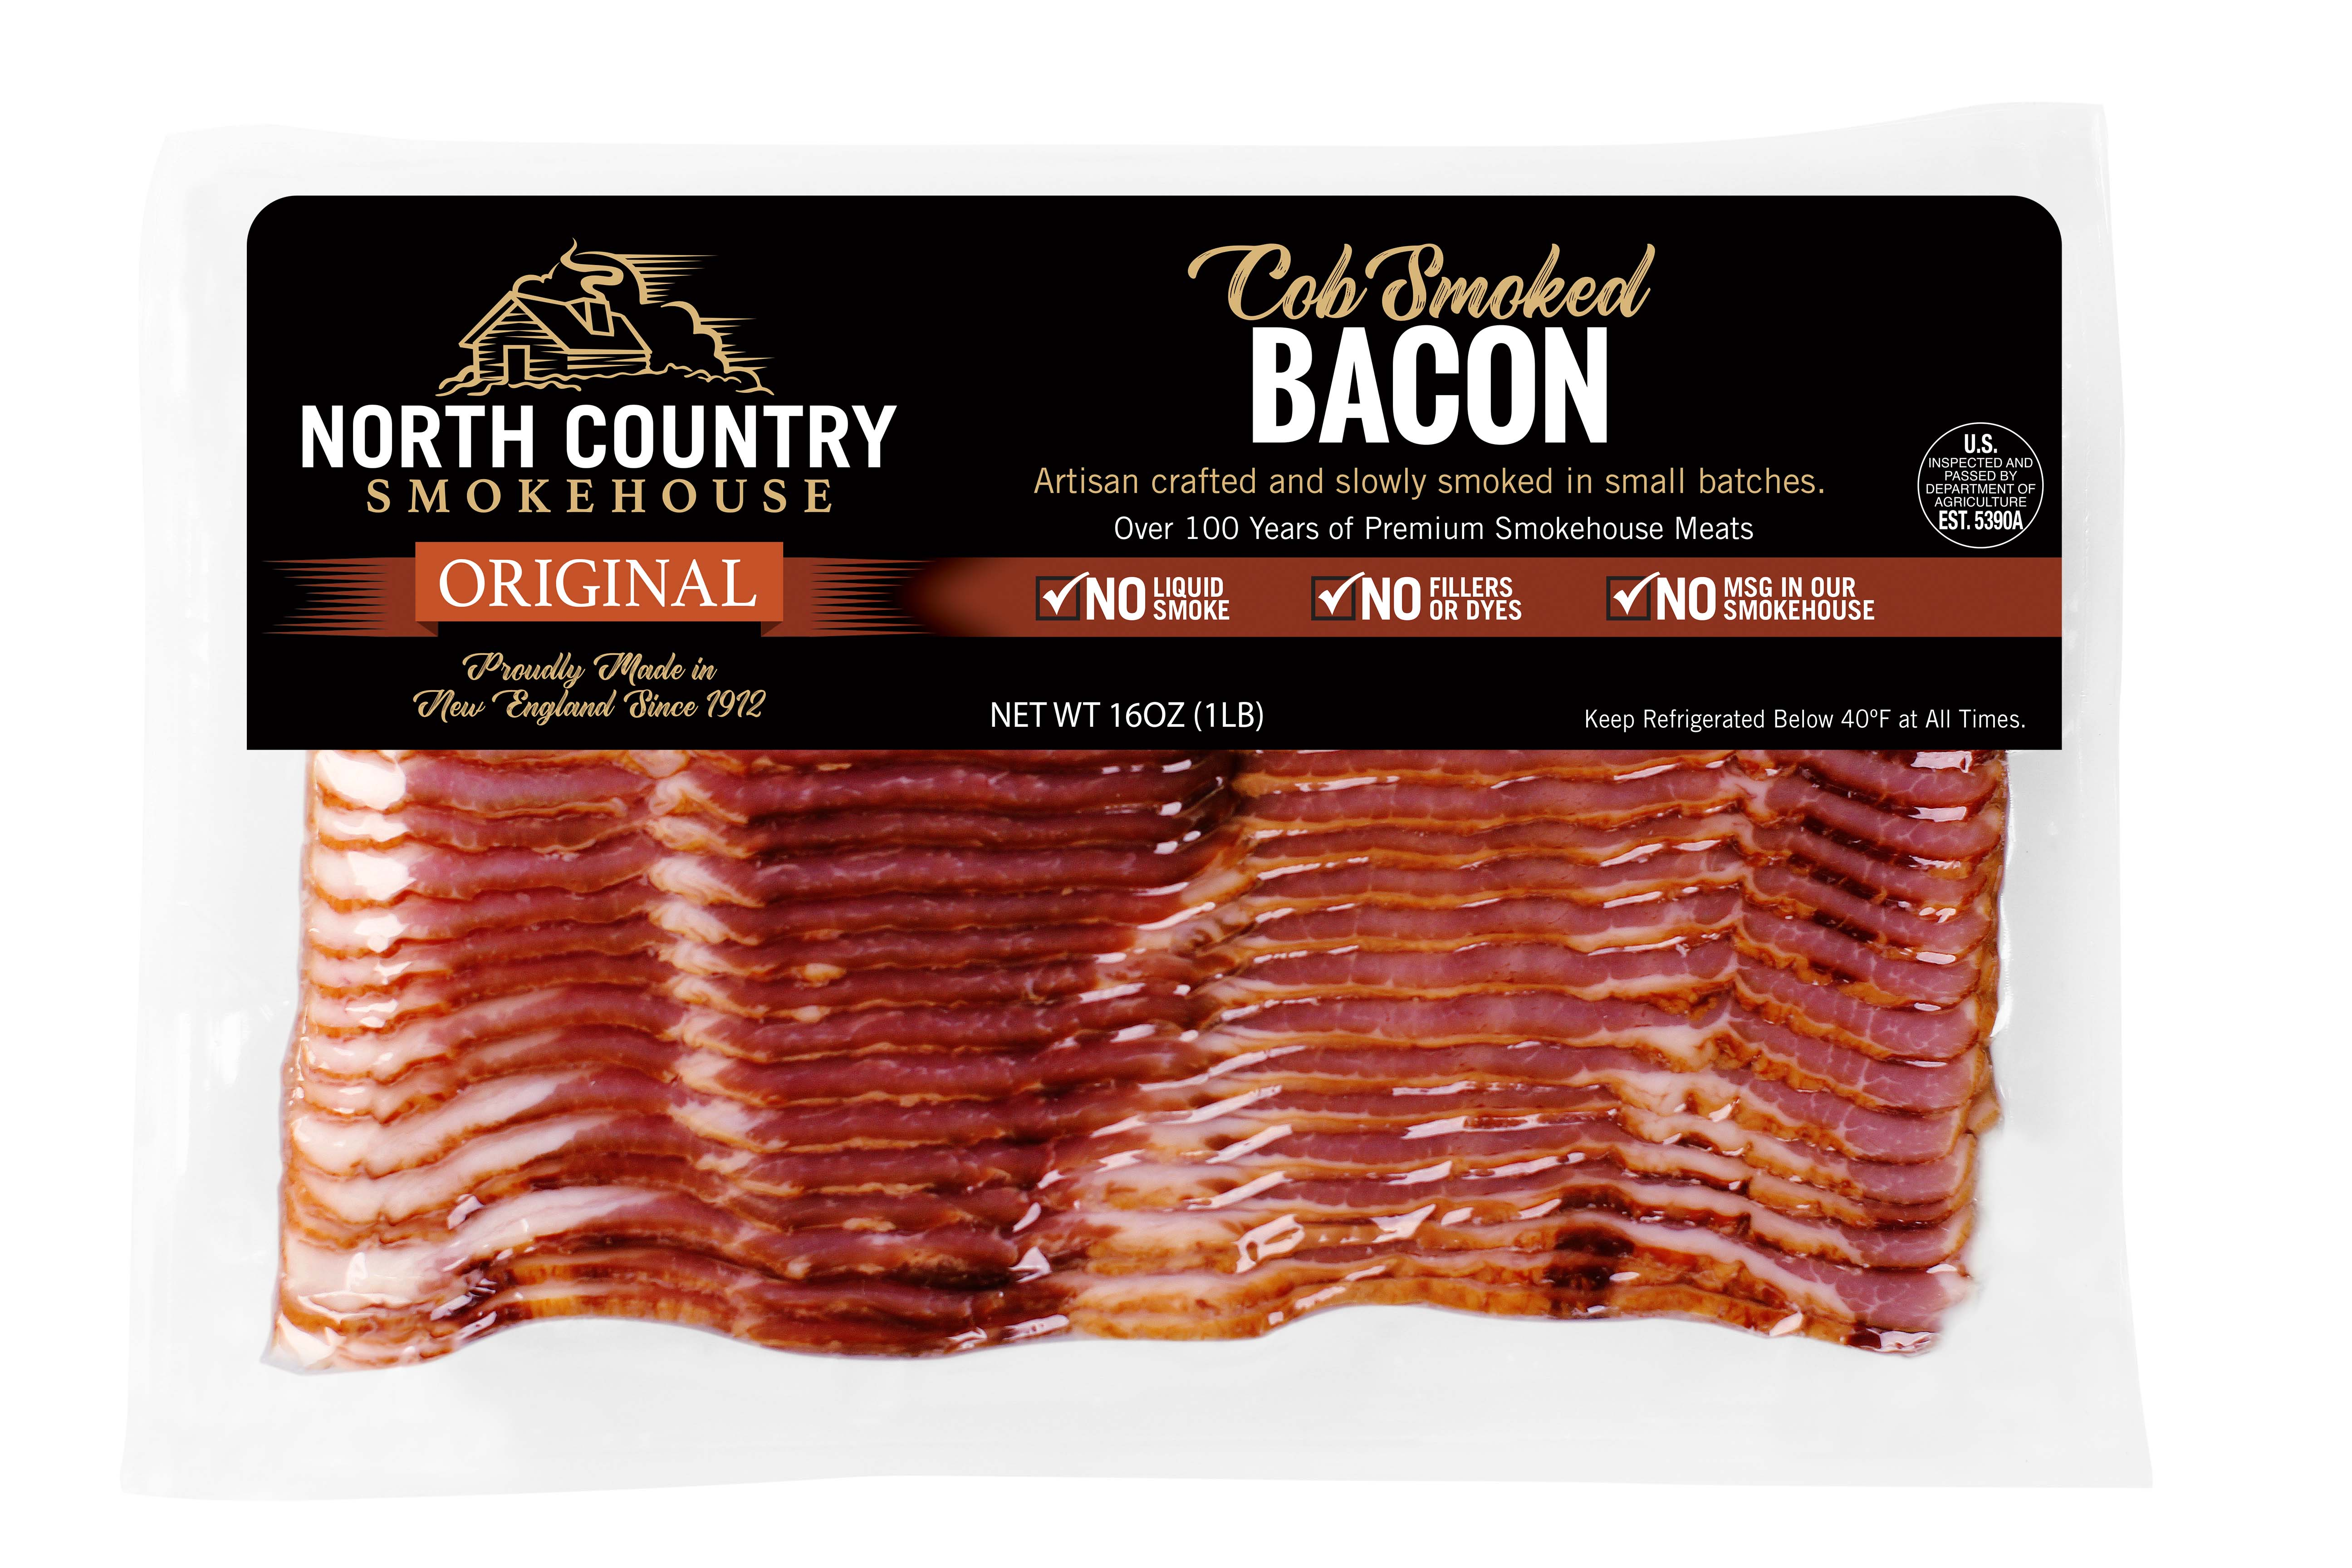 Original Cob Smoked Bacon - 2, 1 lb. packages